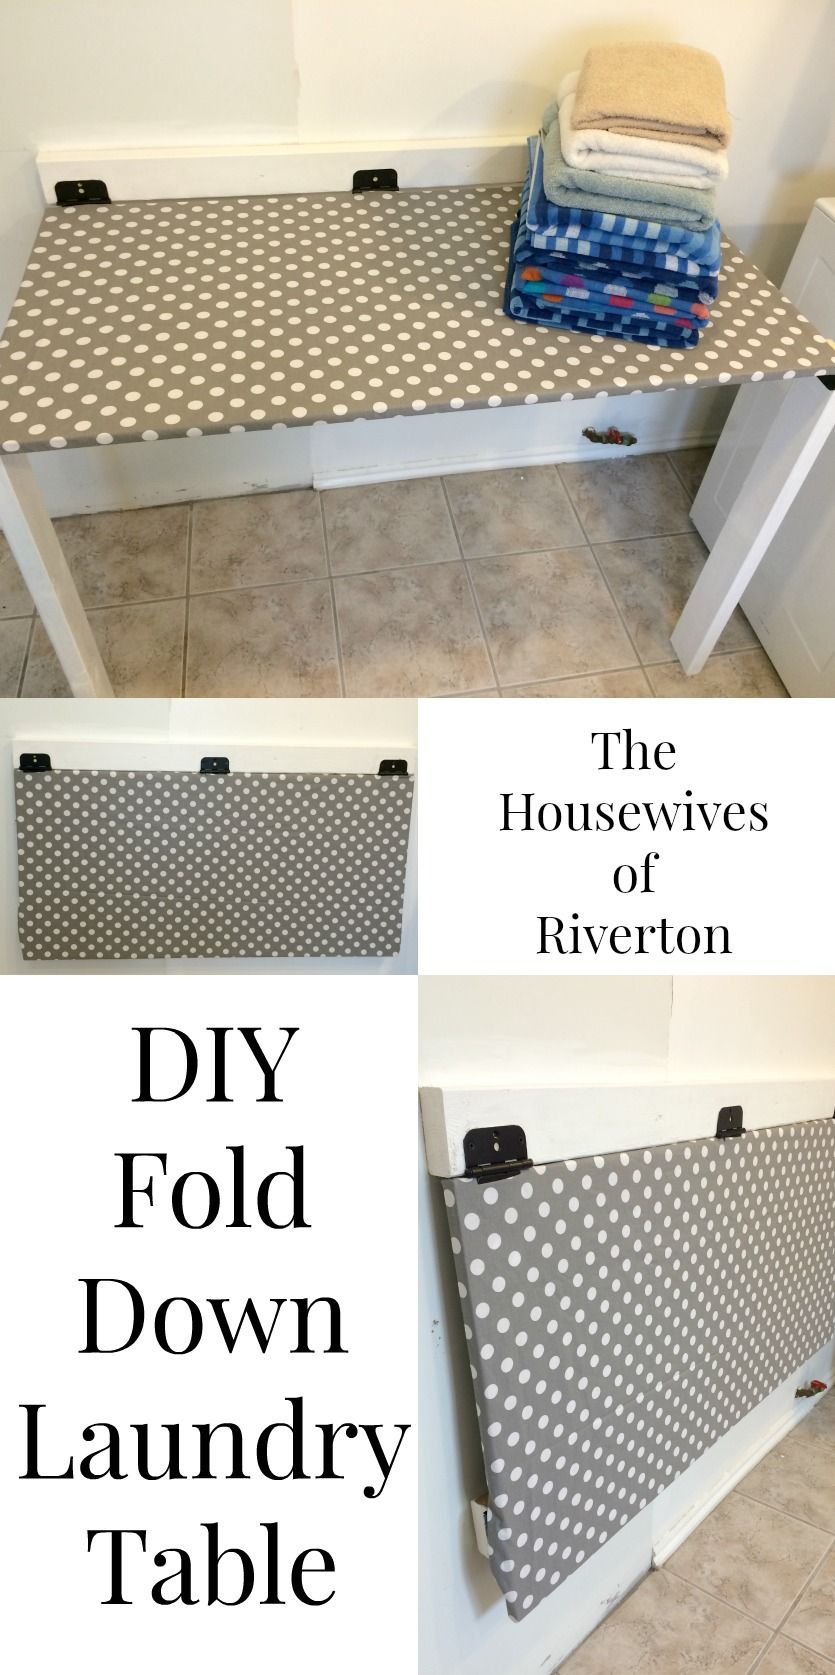 Diy Drop Down Laundry Table Laundry Table Laundry Room in size 835 X 1675